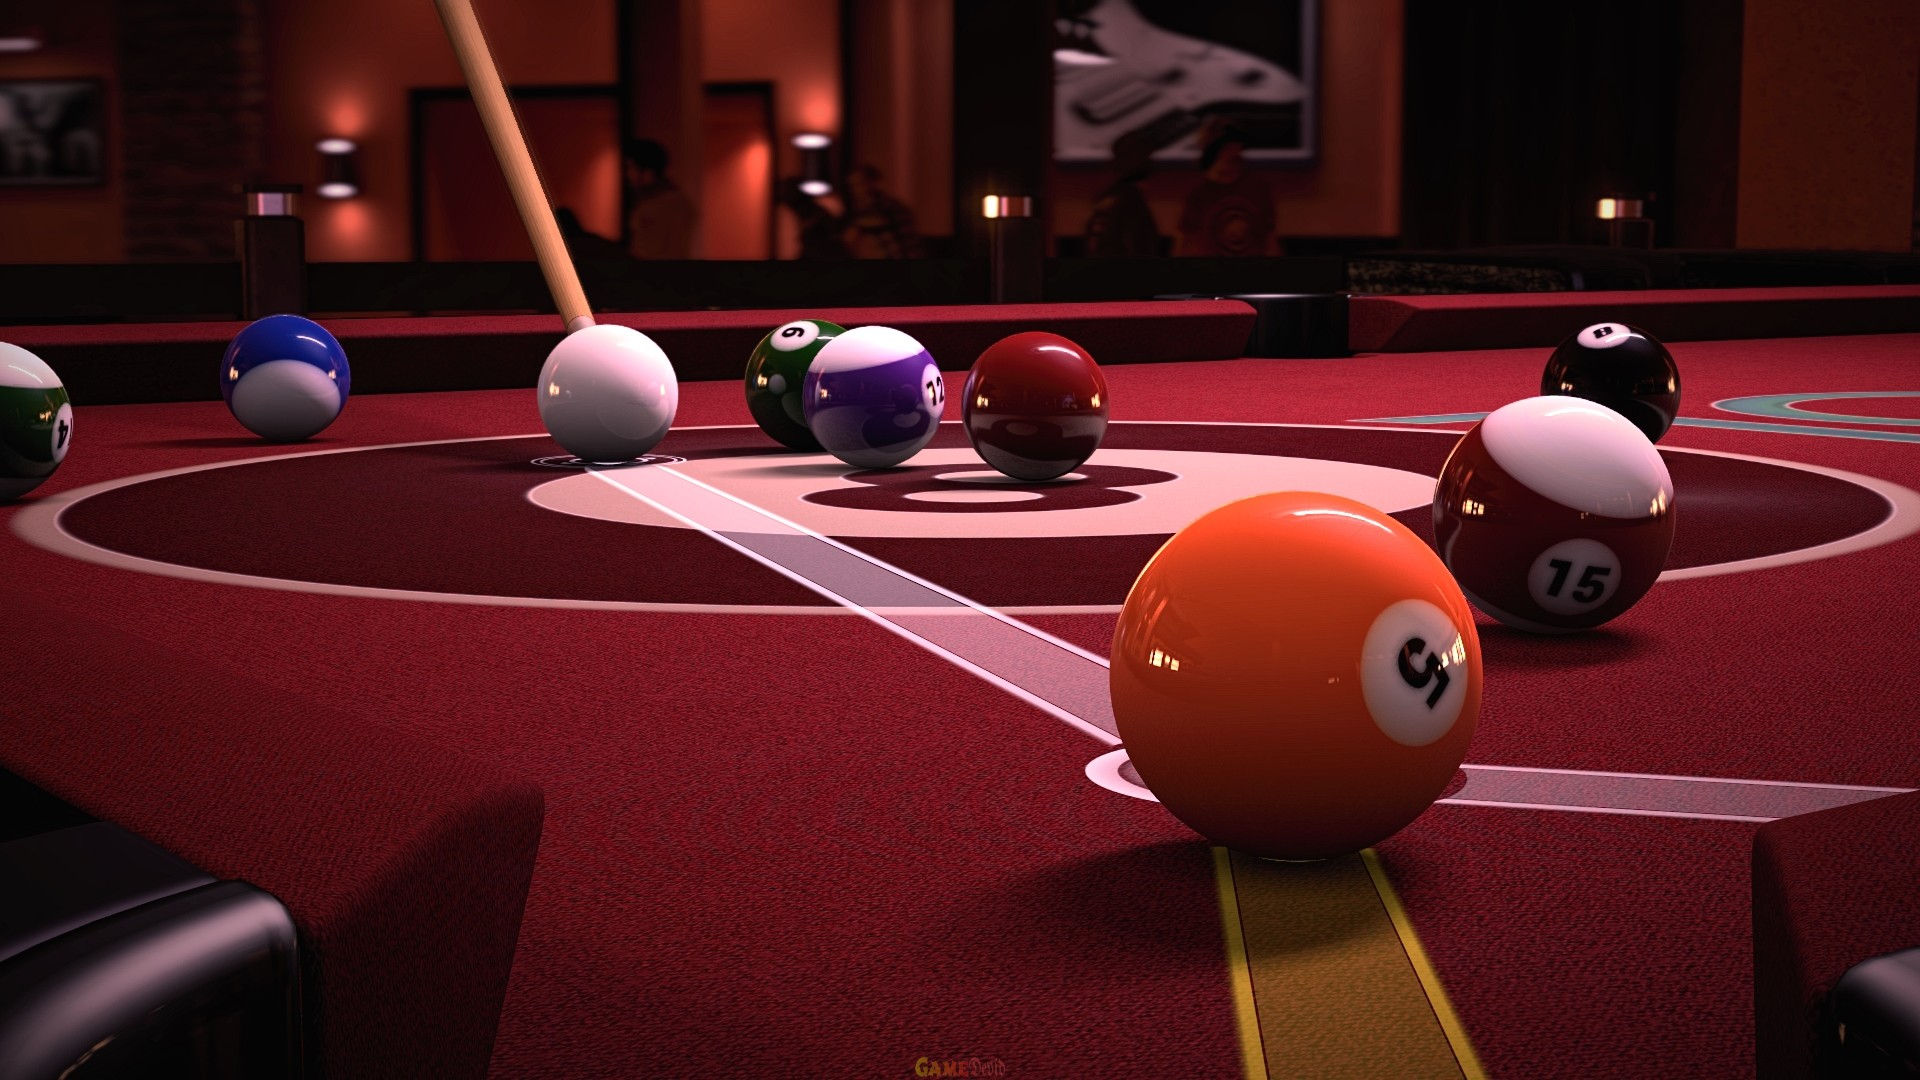 This is Pool PC Complete Game Free Download